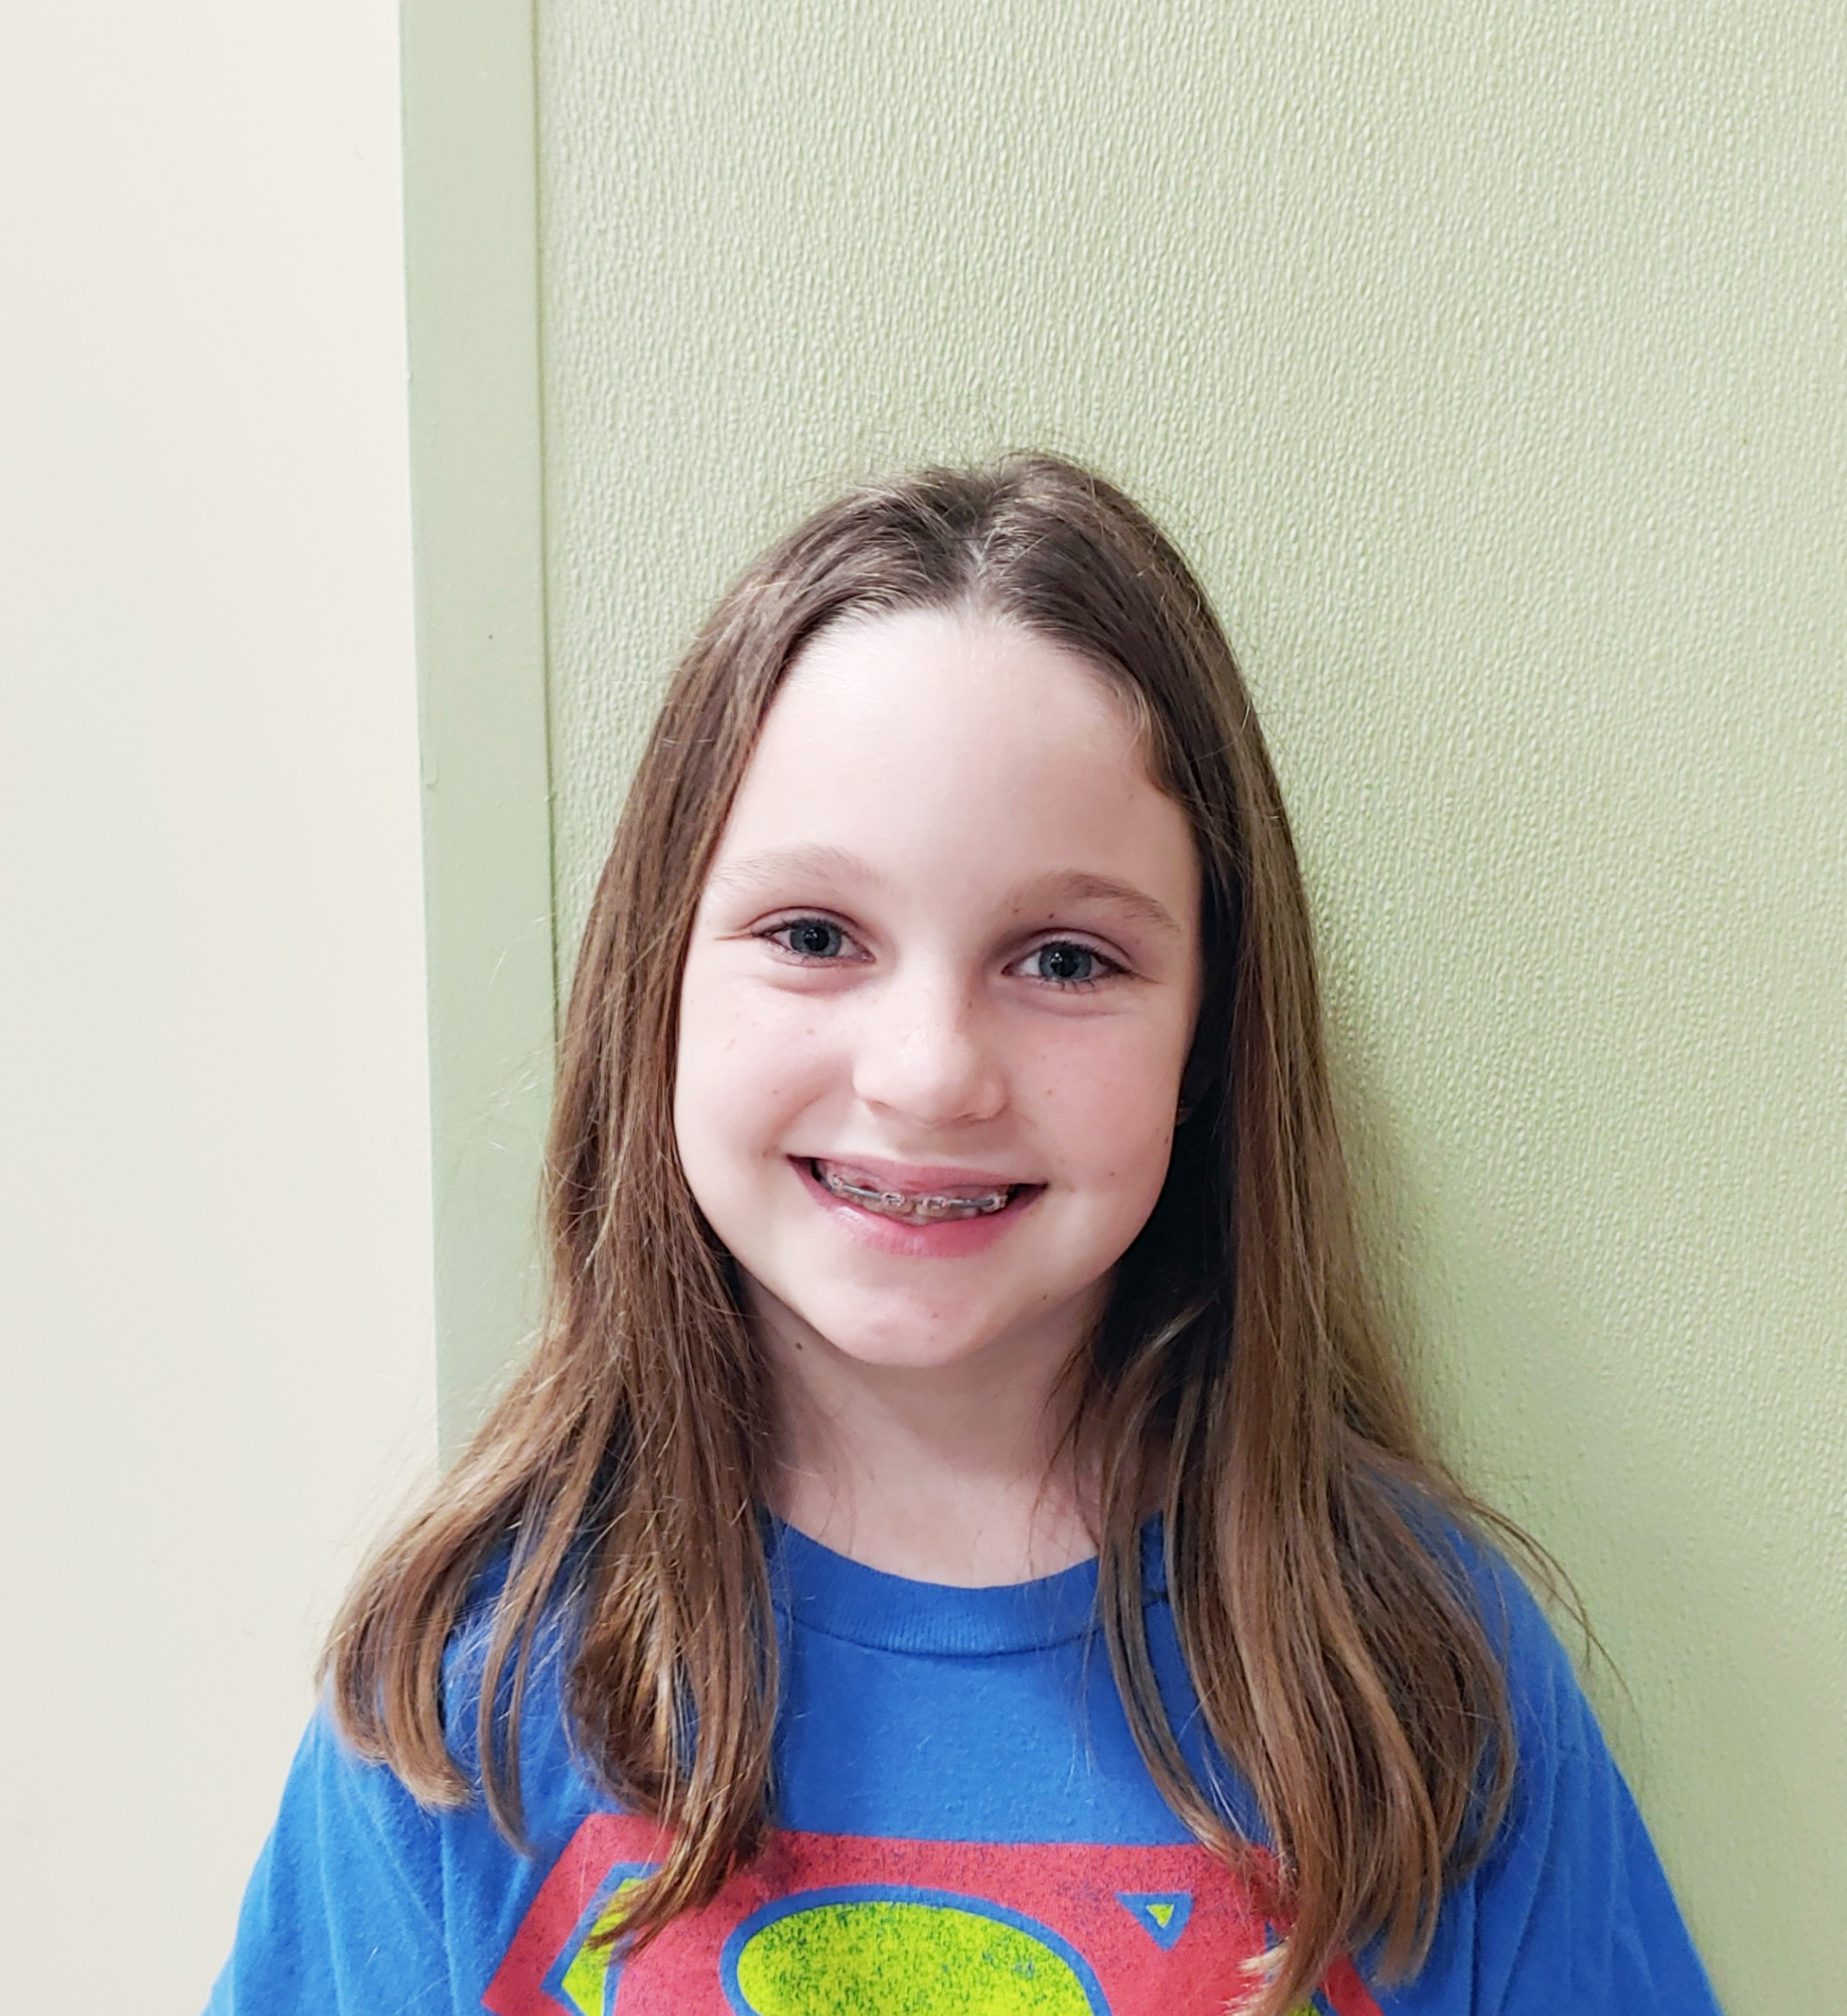 A fun time I had dancing was on Valentine's Day at school when we got to have a dance party with my whole class.  Addison, age 8  Clements Ferry Road area